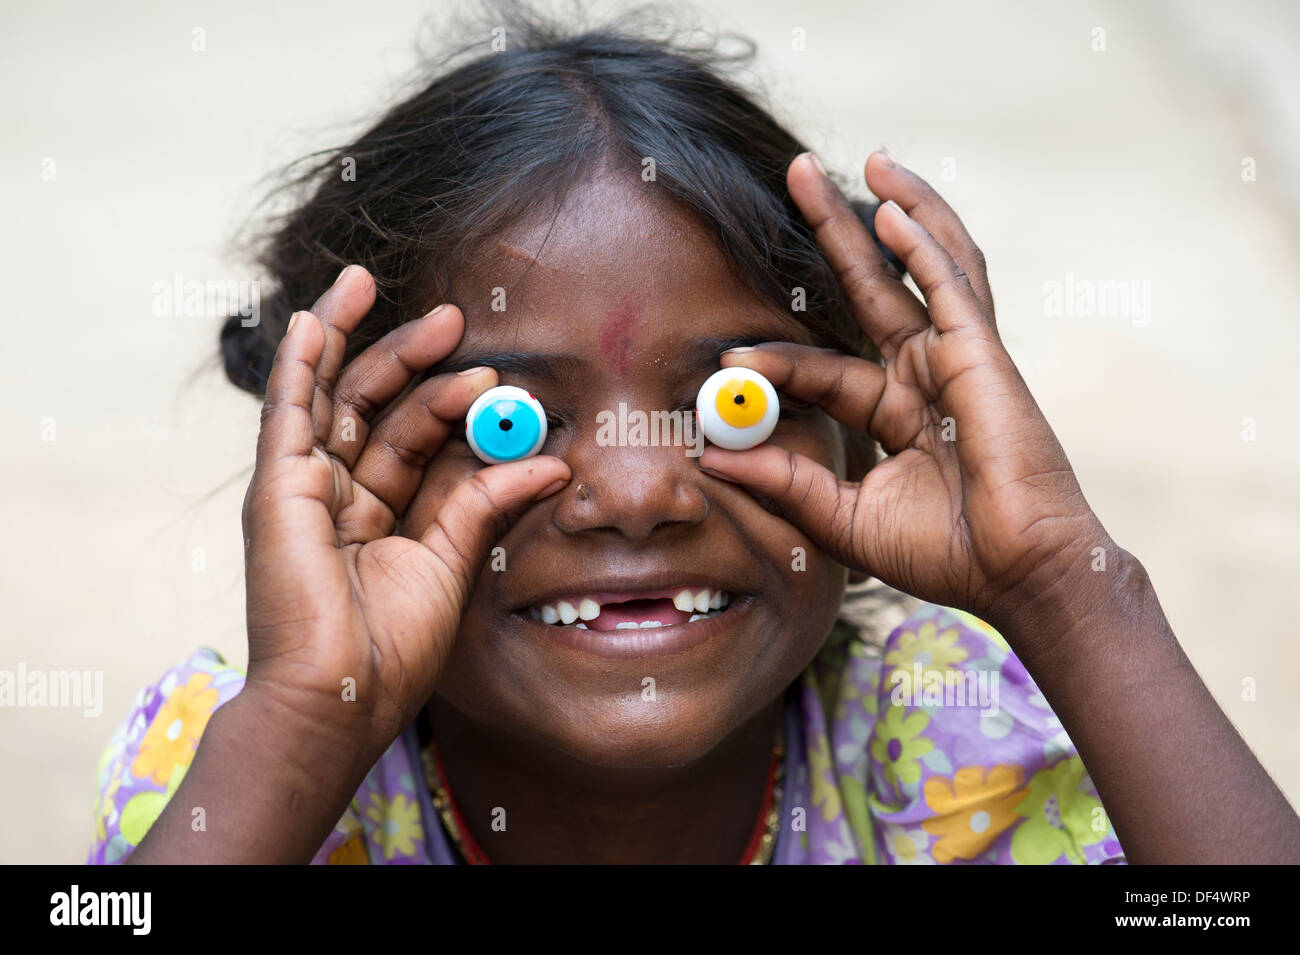 Poor happy funny Indian girl holding marble eyes with a toothless grin. India - Stock Image